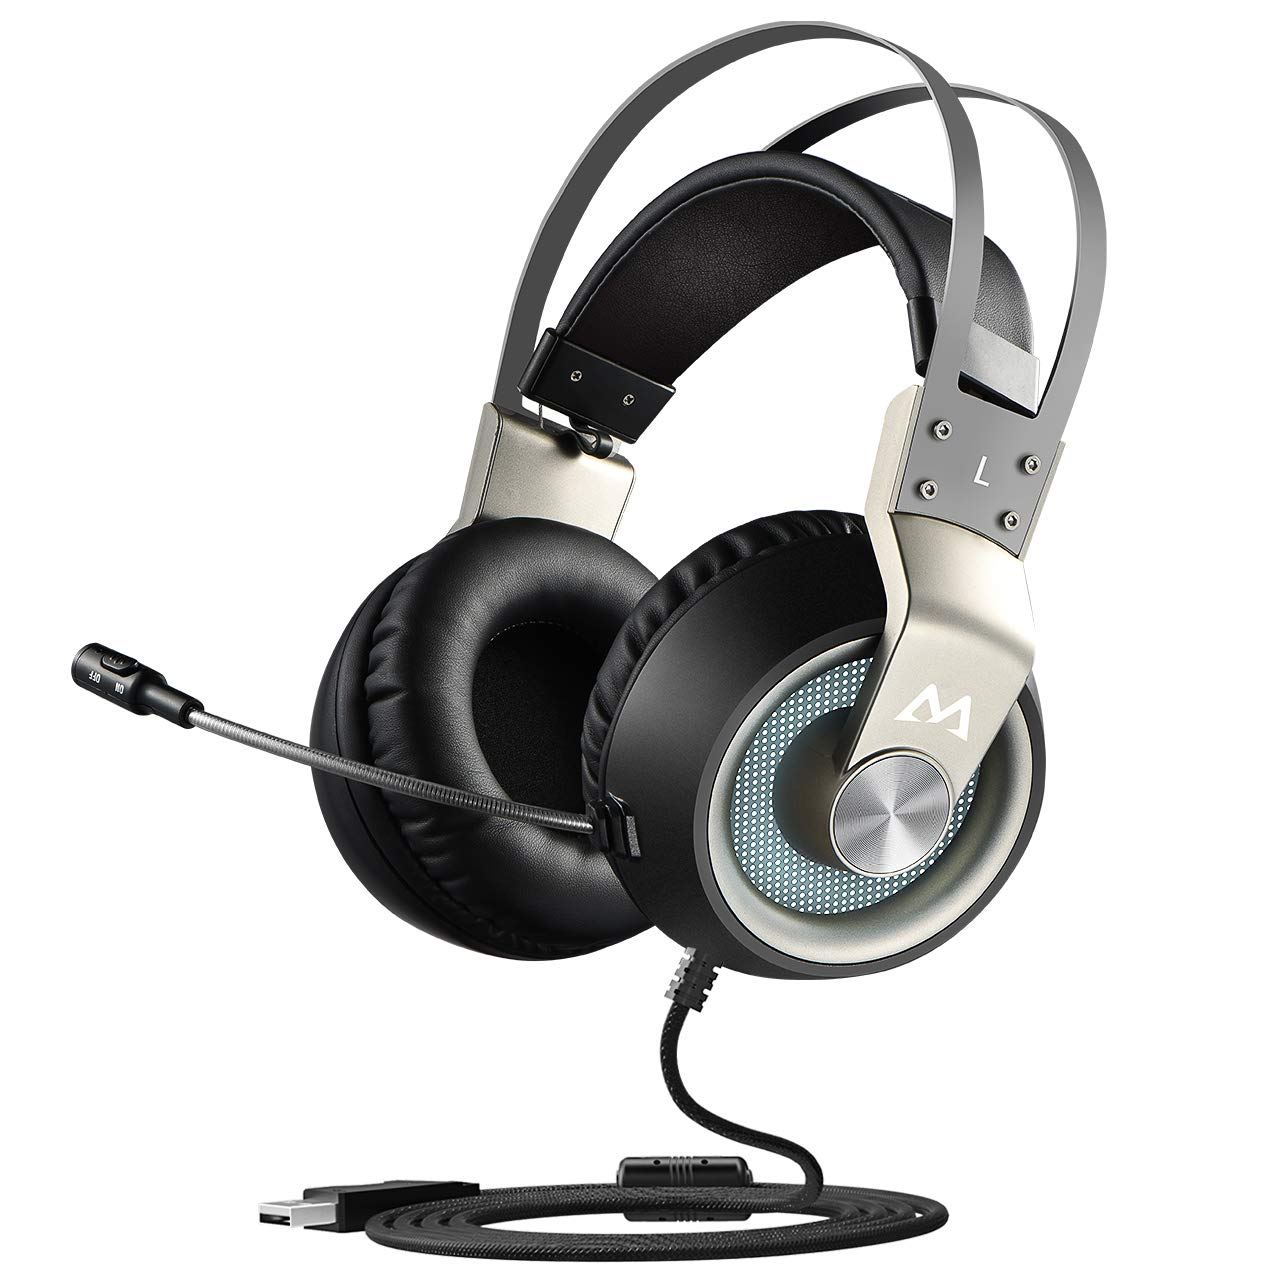 Mpow USB Gaming Headset, 7 1 Surround Sound Gaming Headphones for FPS Game,  50mm Driver, Stereo Over-Ear USB Computer Headset with Noise Cancelling